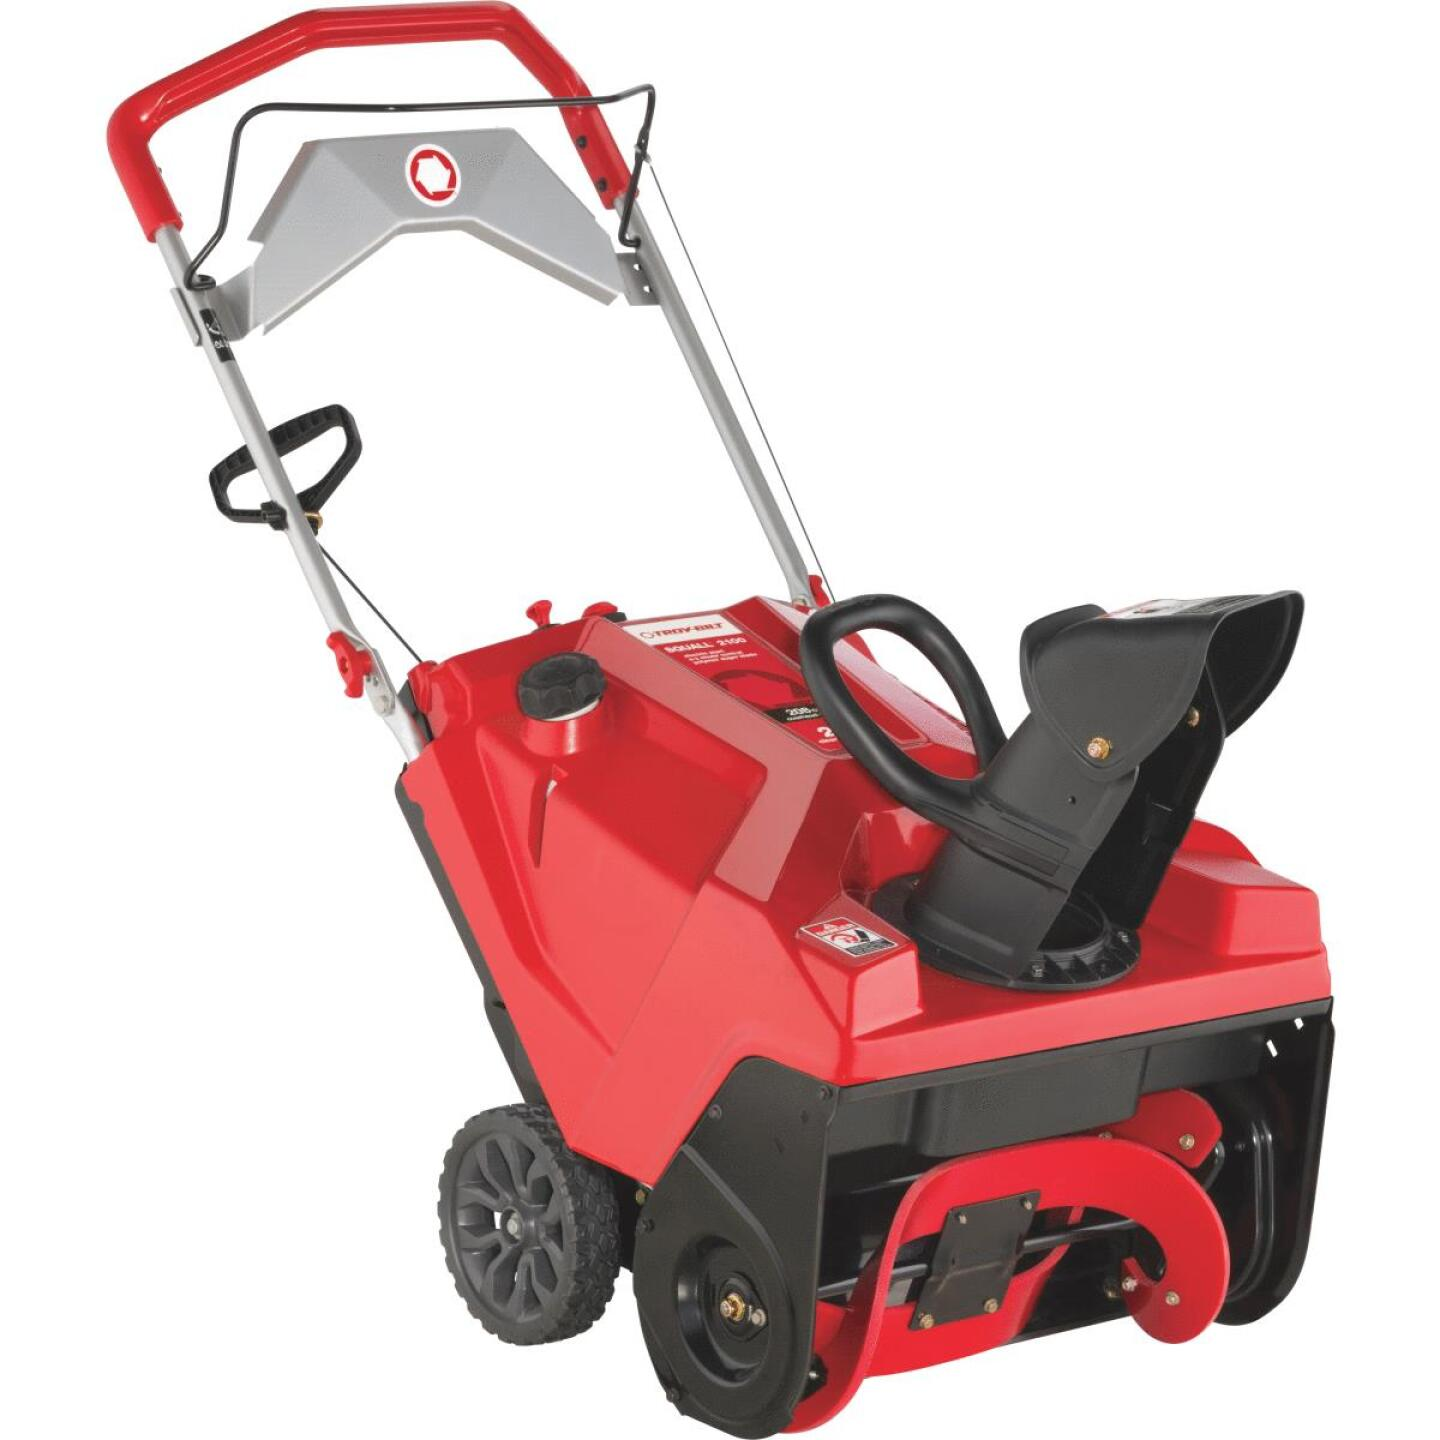 Troy-Bilt Squall 2100 21 In. 208cc Single-Stage Gas Snow Blower Image 2